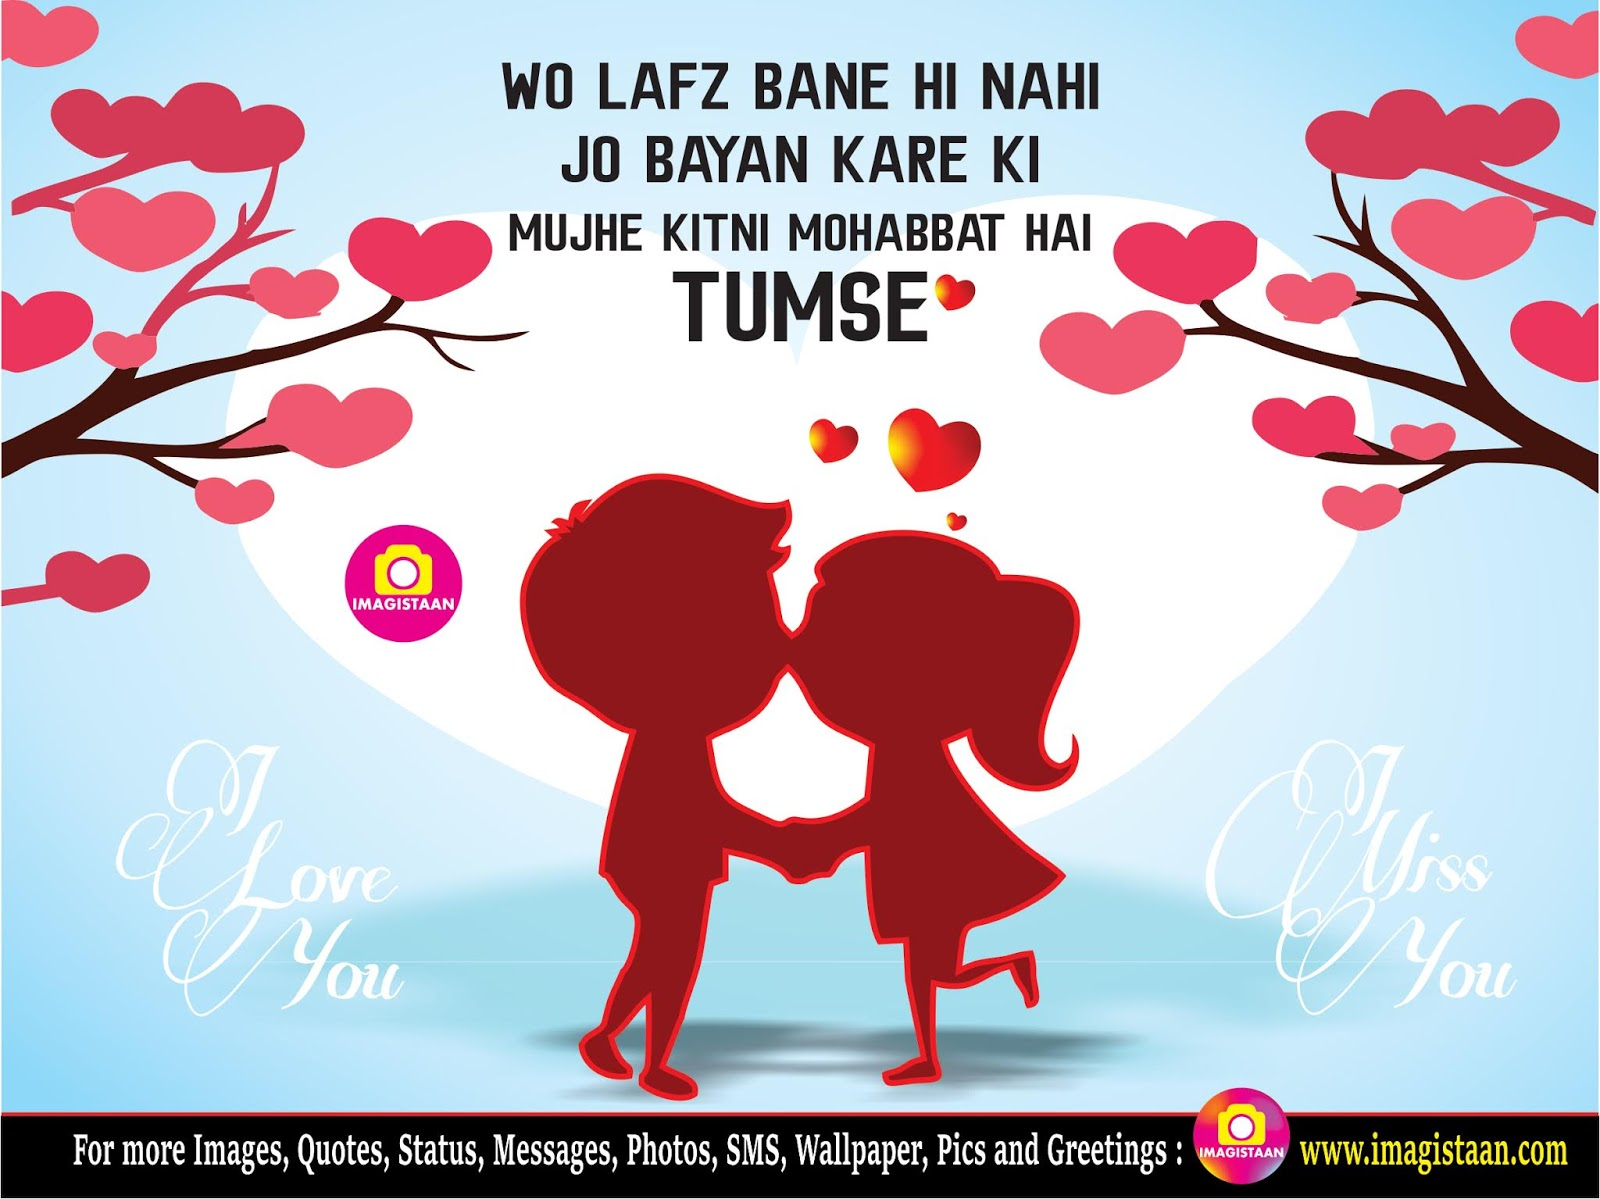 Romantic Shayri on Love in Hindi, Shayari Image Download, Love